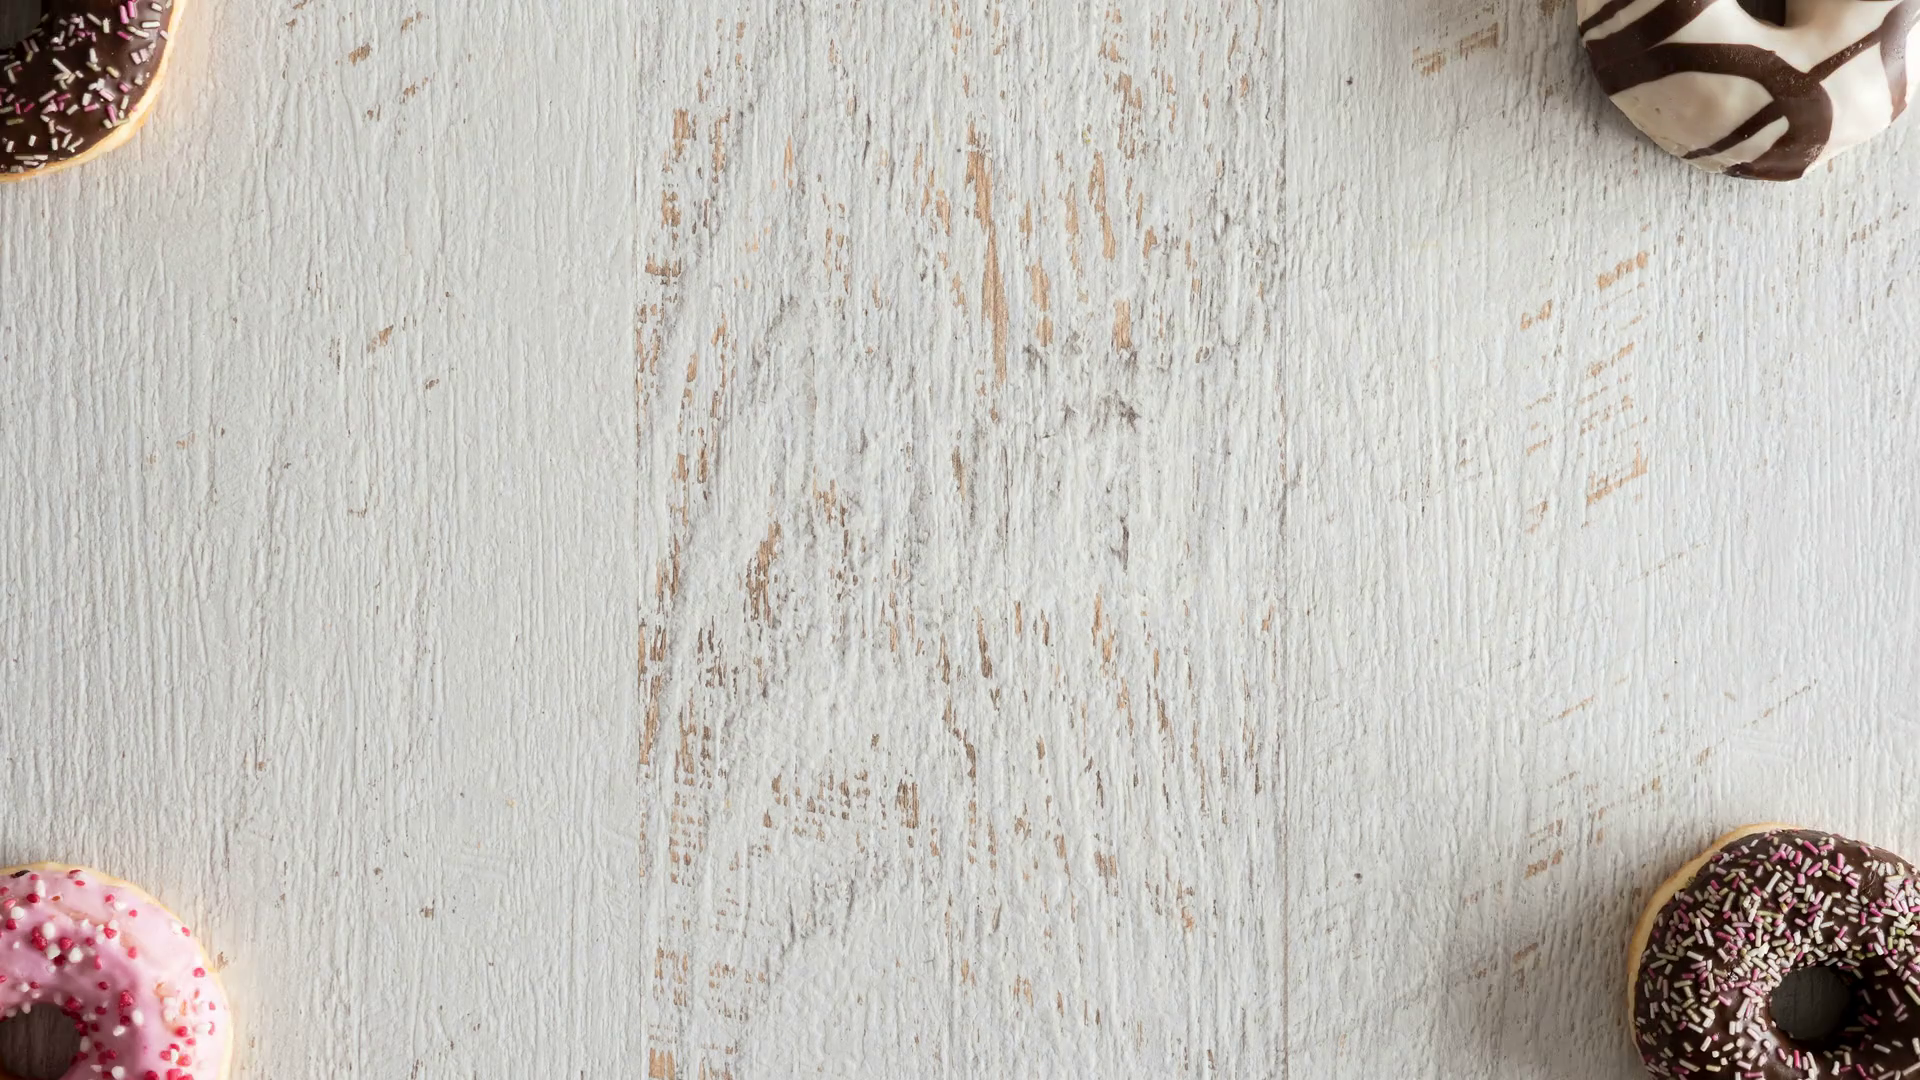 White Wood Background 110 images in Collection Page 1 1920x1080